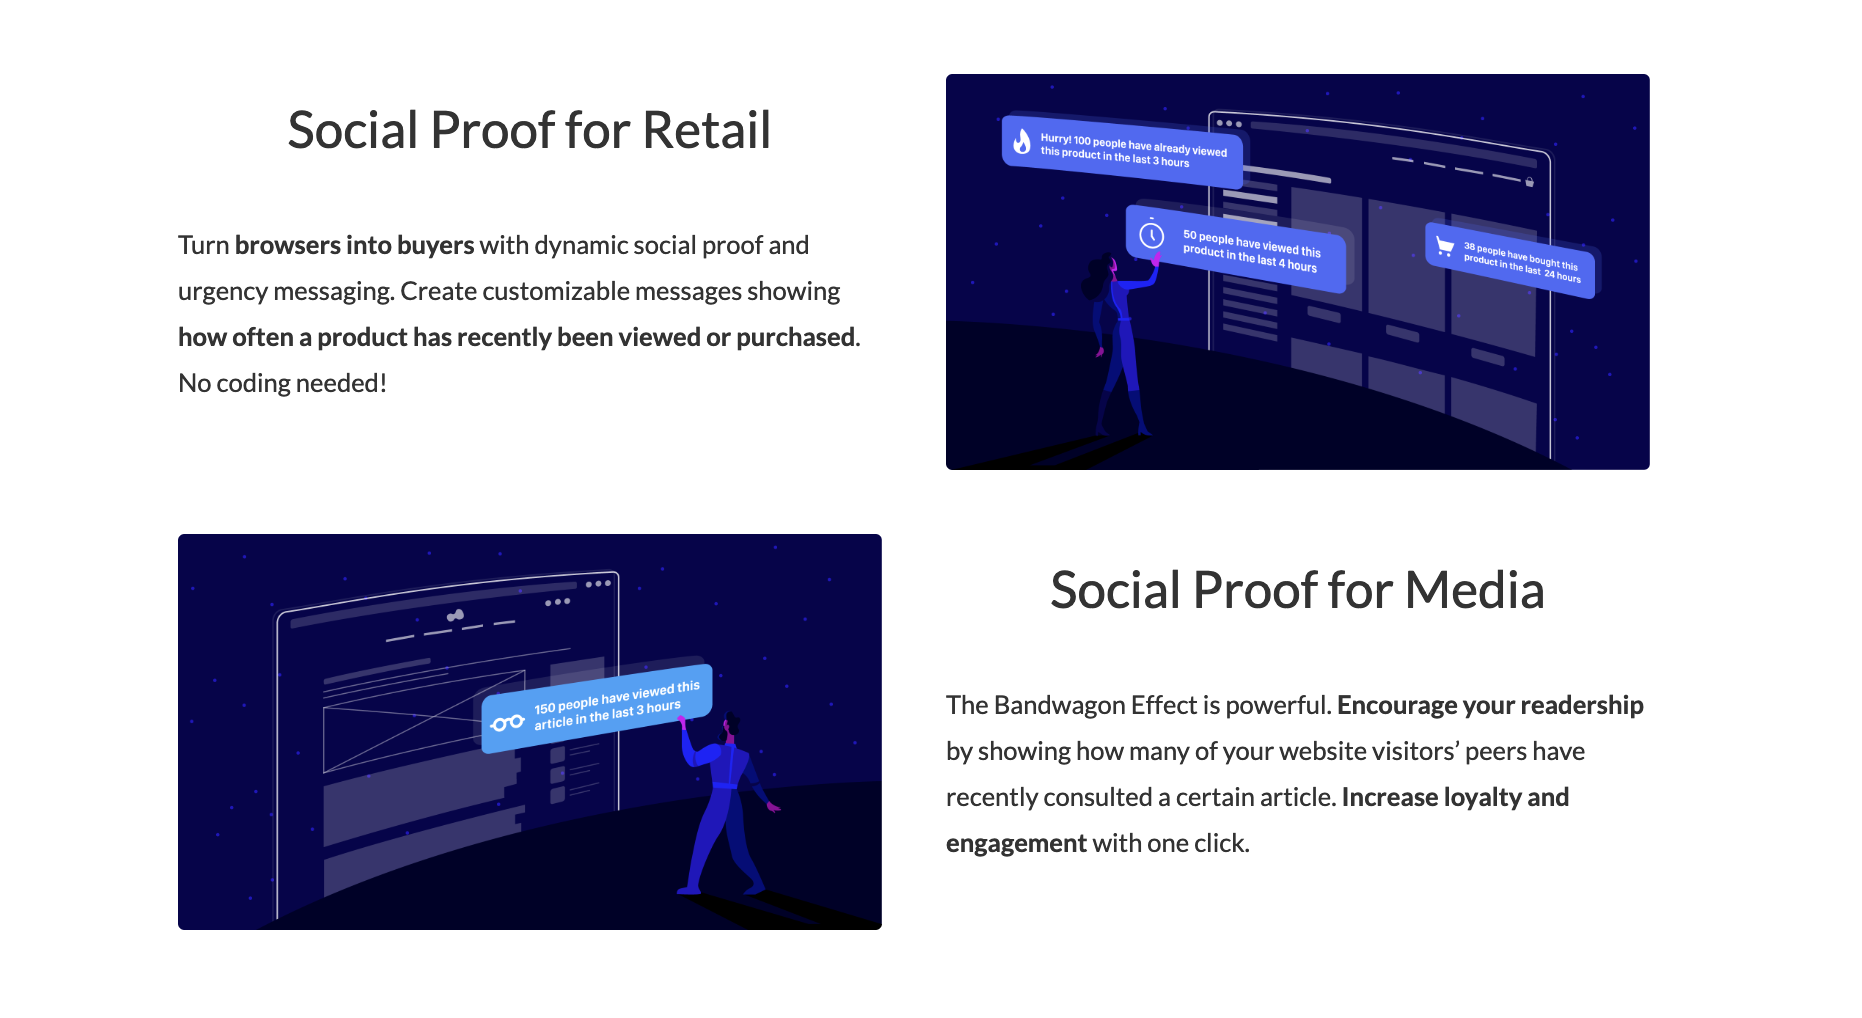 nudge engagement social proof app